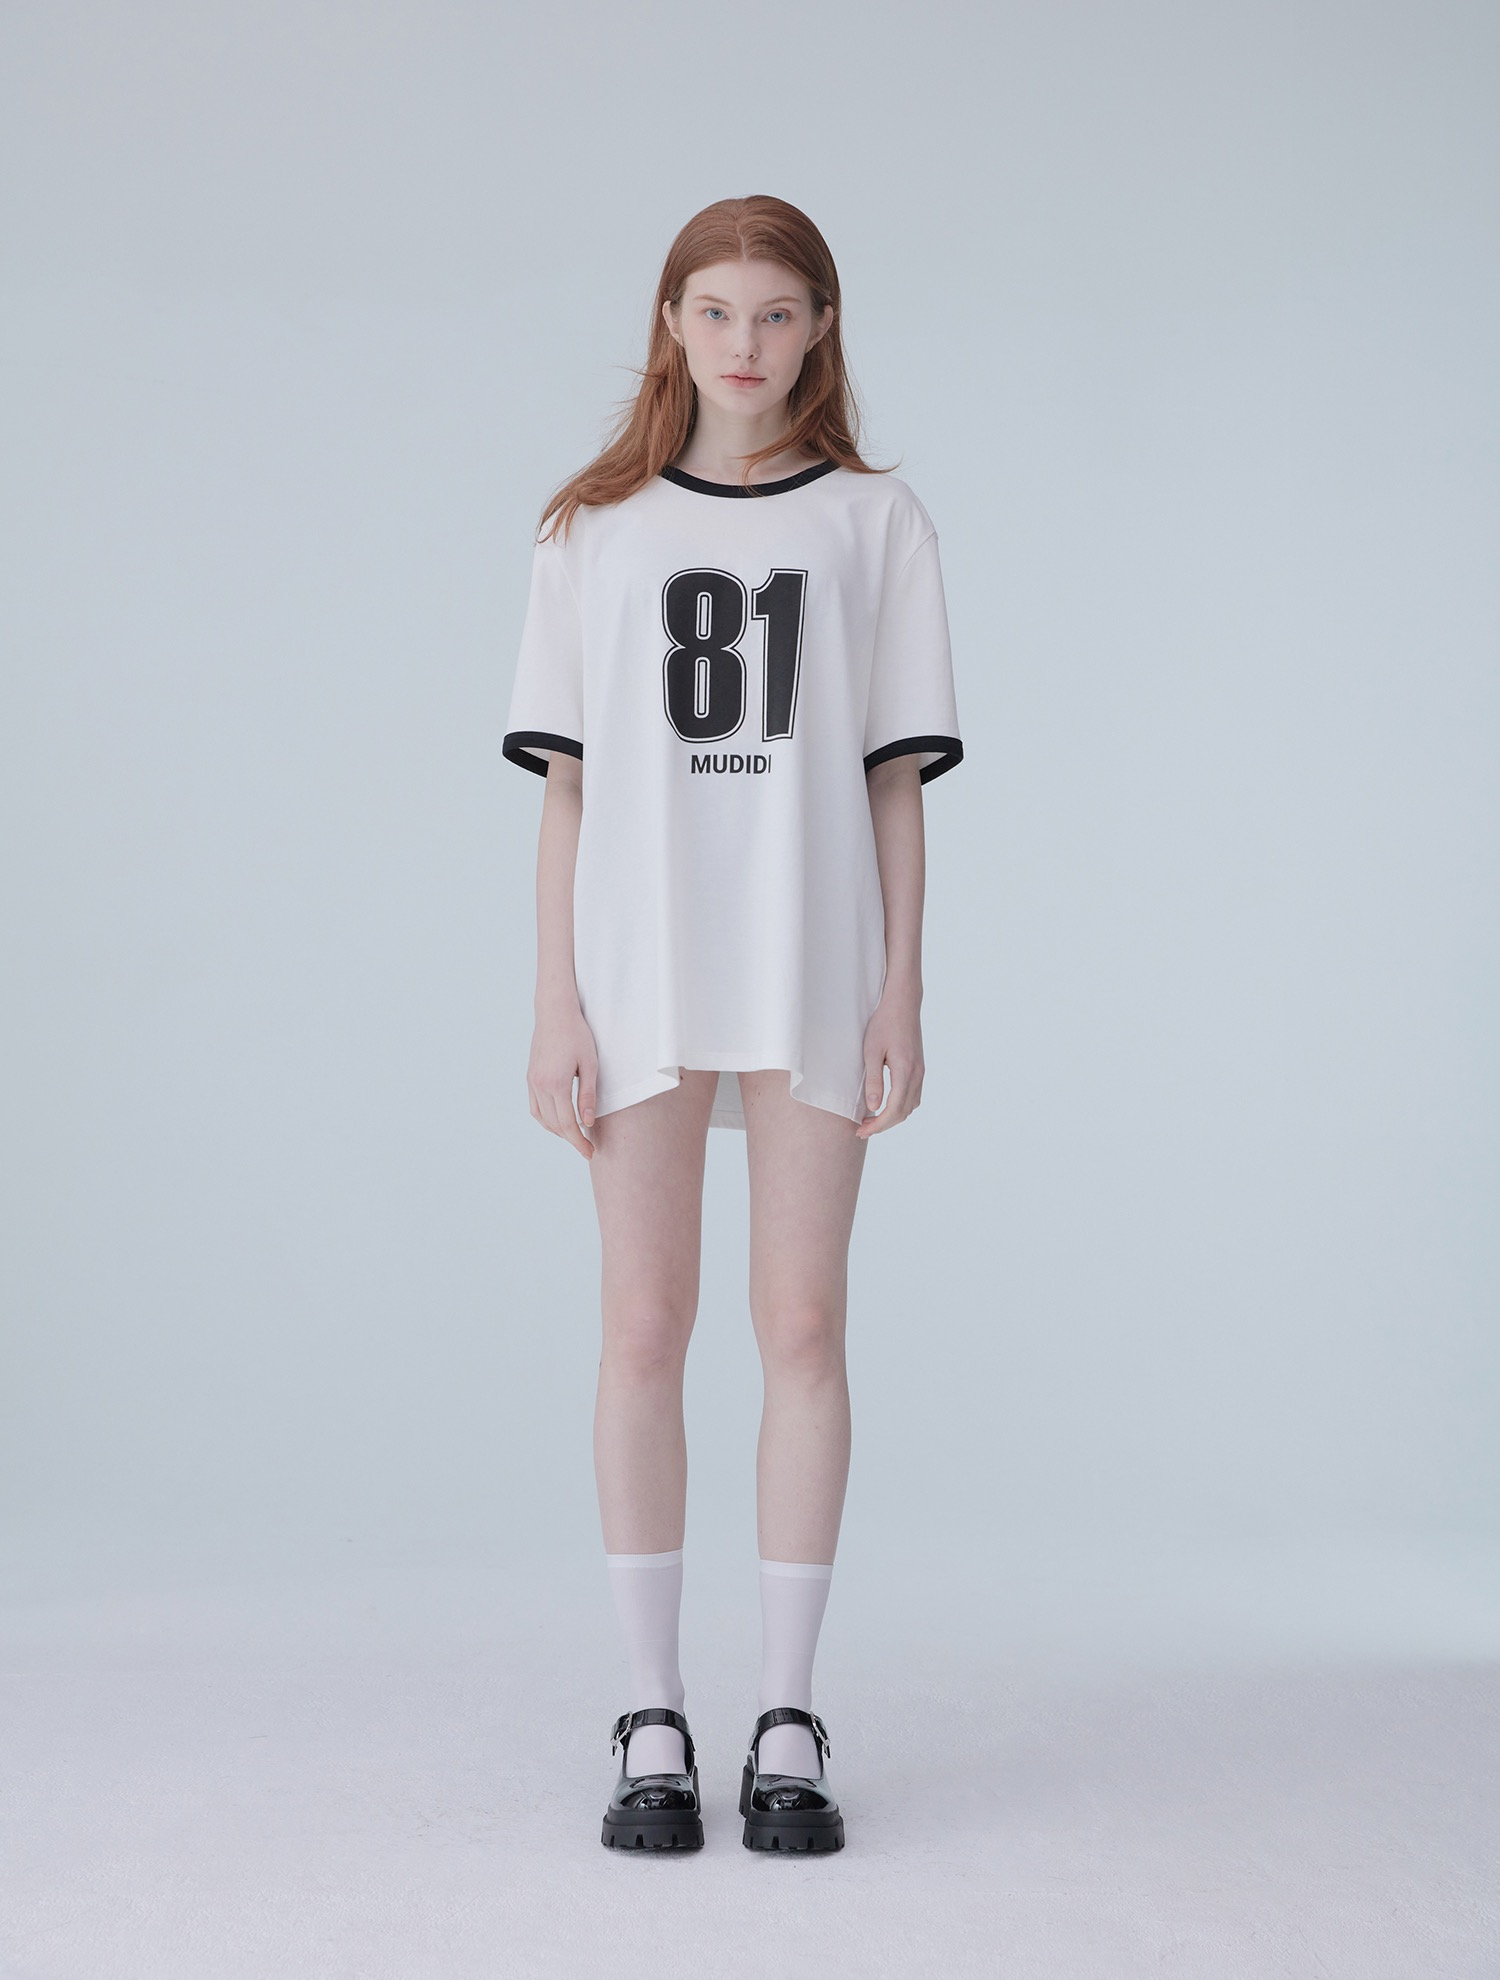 [오연서 착용]Oversize numbering t-shirt 002 Black